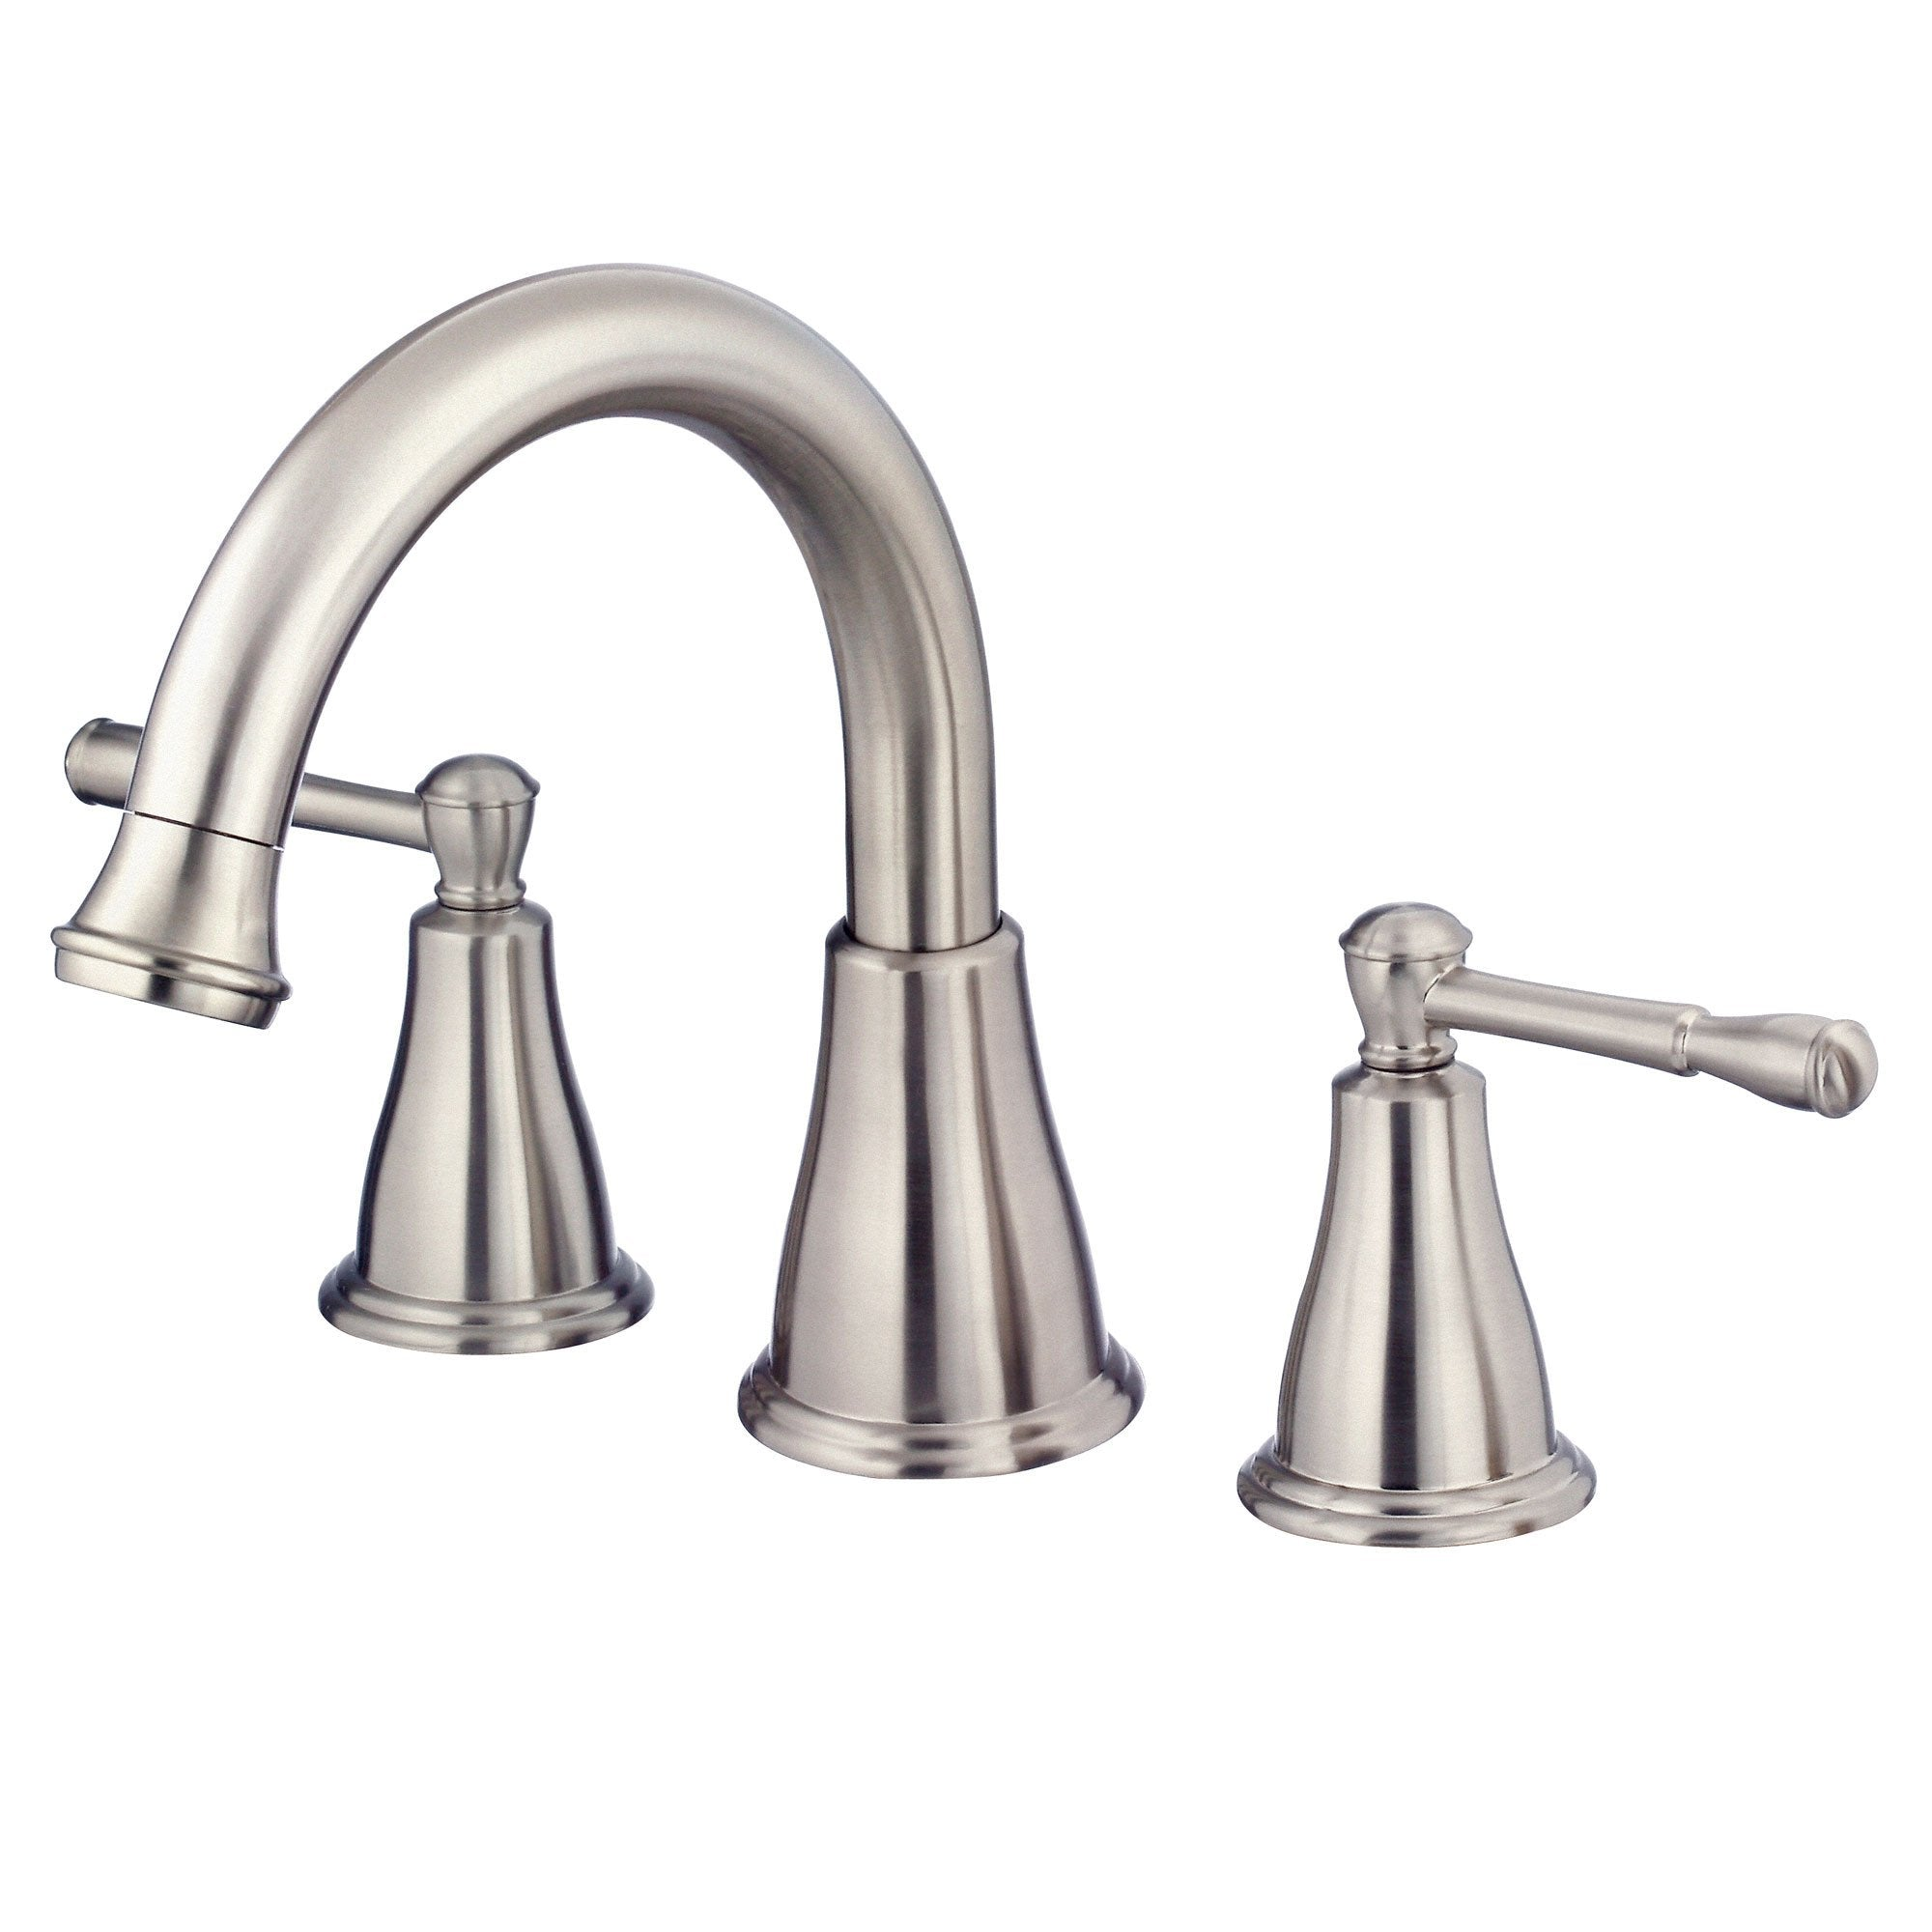 Danze Eastham Brushed Nickel Widespread Roman Bath Tub Filler Faucet INCLUDES Rough-in Valve